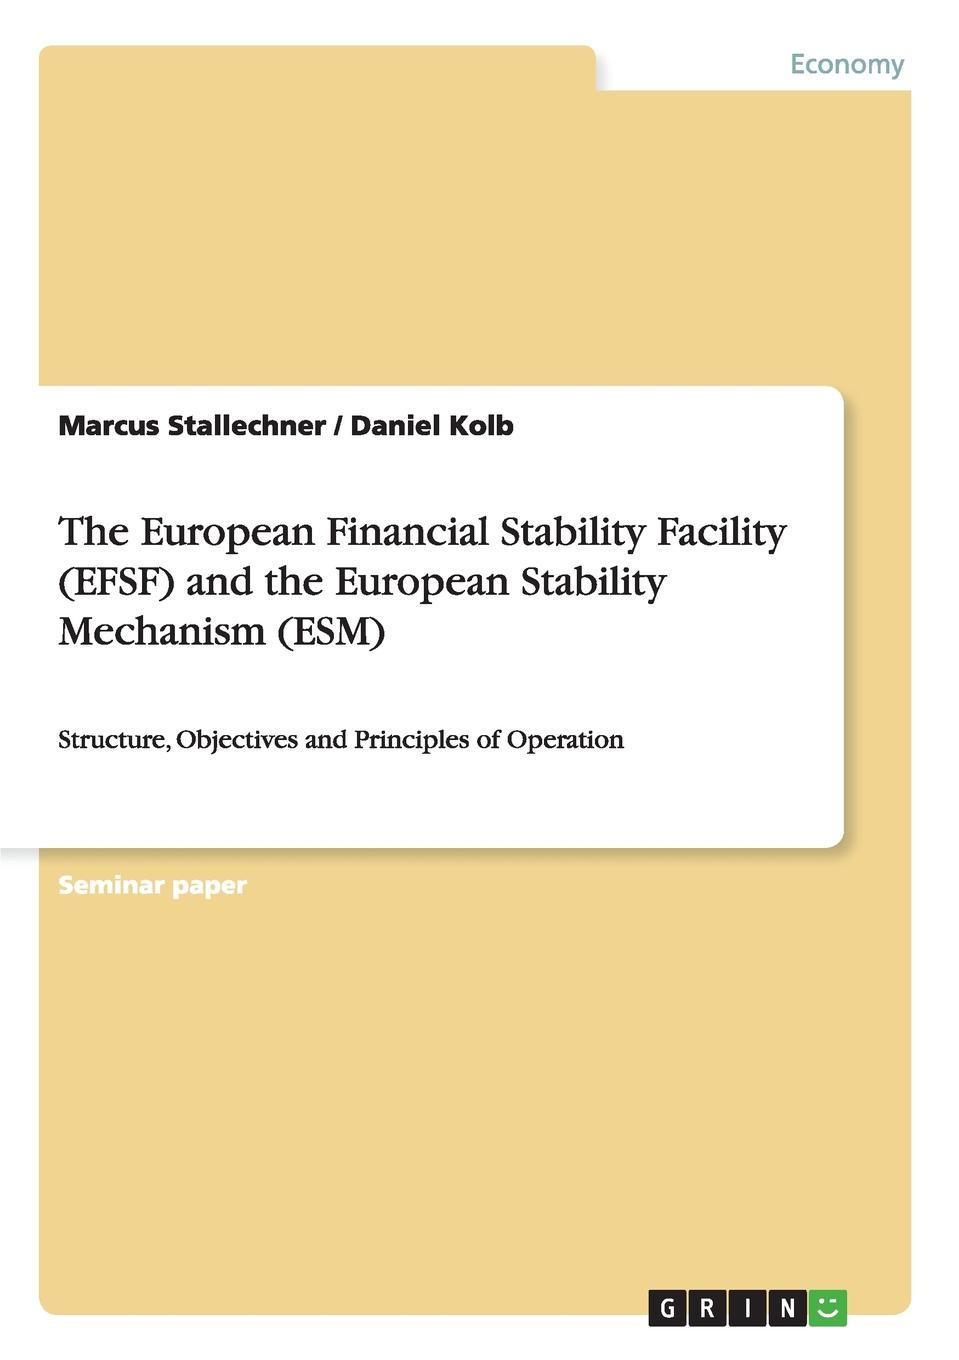 Marcus Stallechner, Daniel Kolb The European Financial Stability Facility (EFSF) and the European Stability Mechanism (ESM) thammarak moenjak central banking theory and practice in sustaining monetary and financial stability